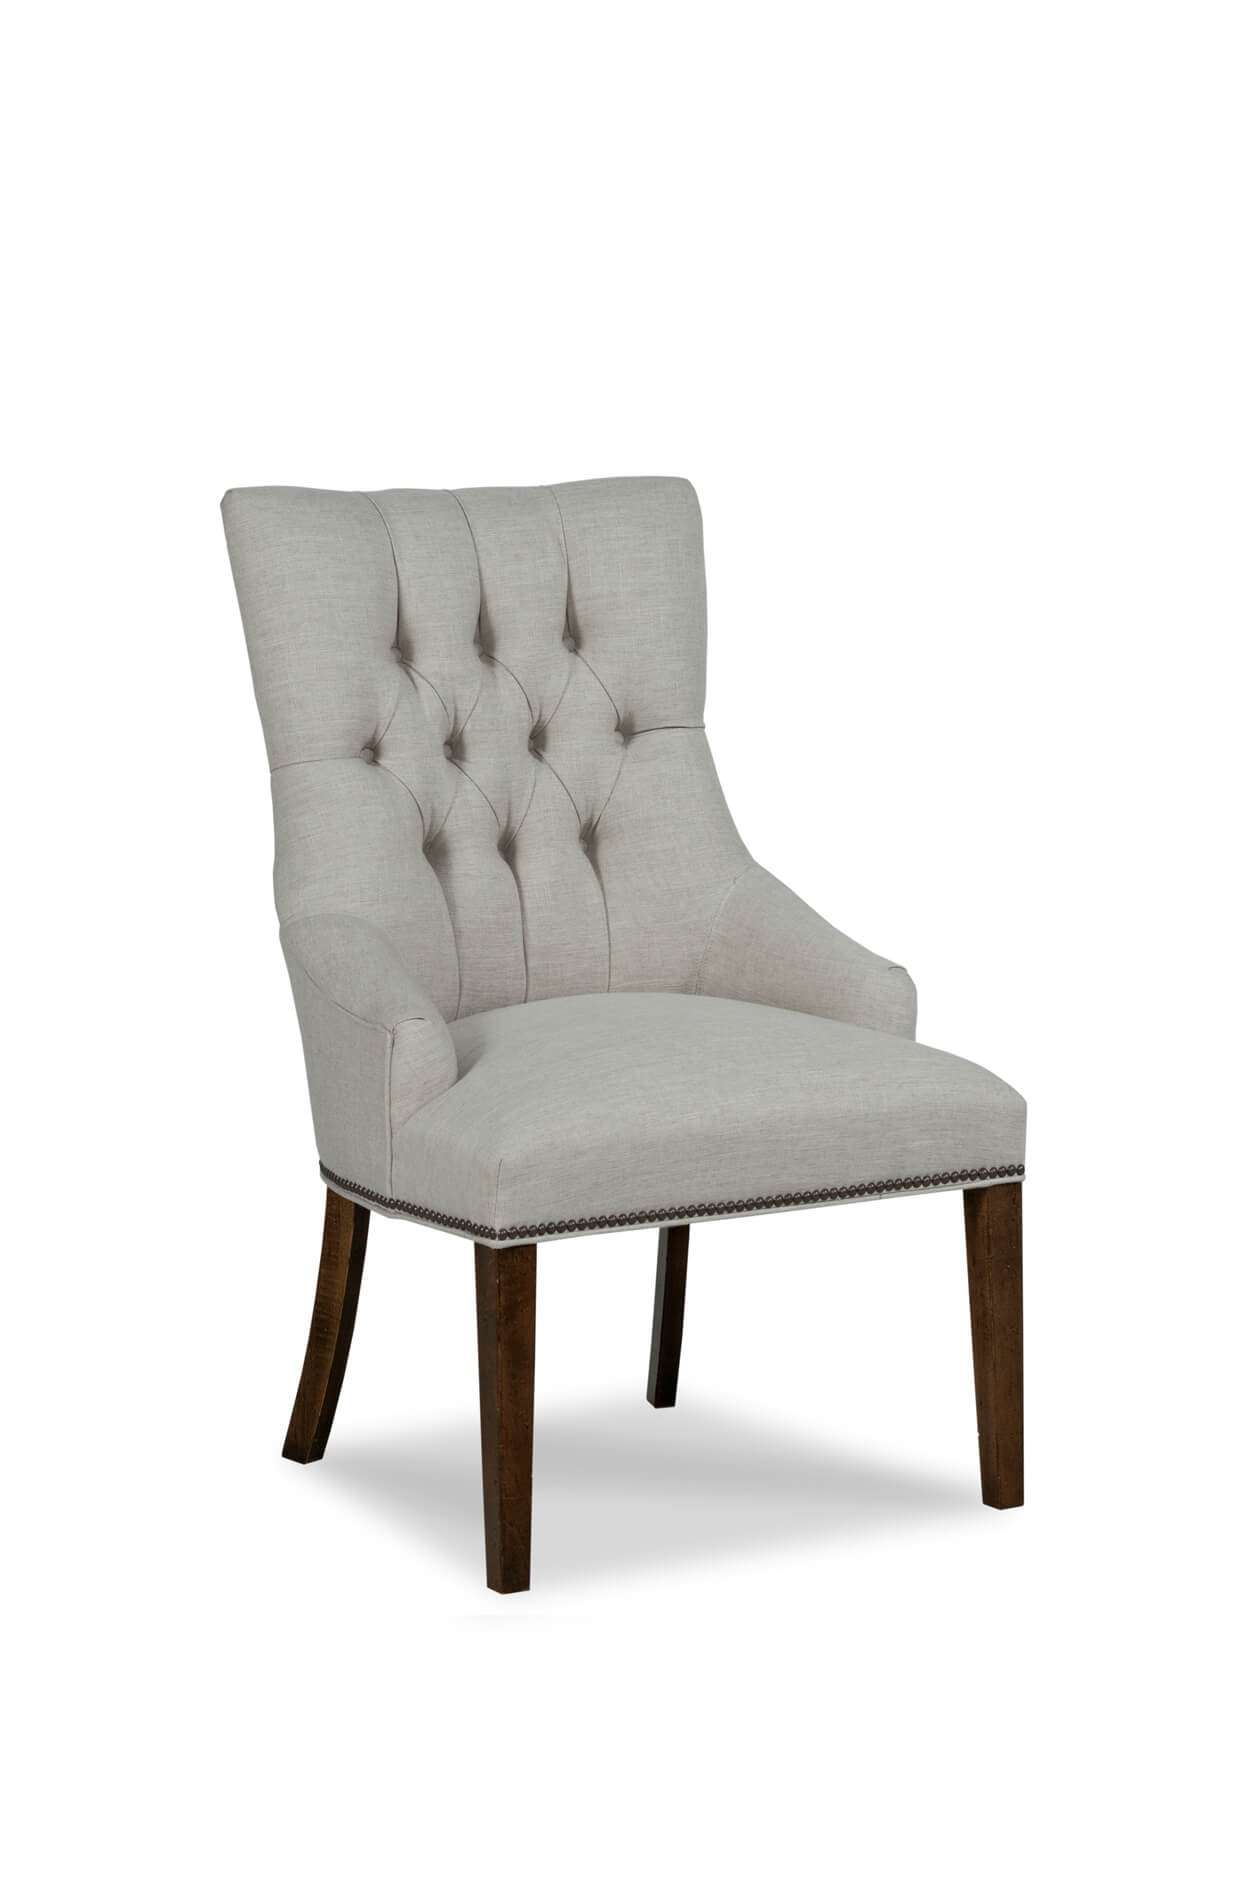 Fairfield's Clancy Upholstered Dining Chair